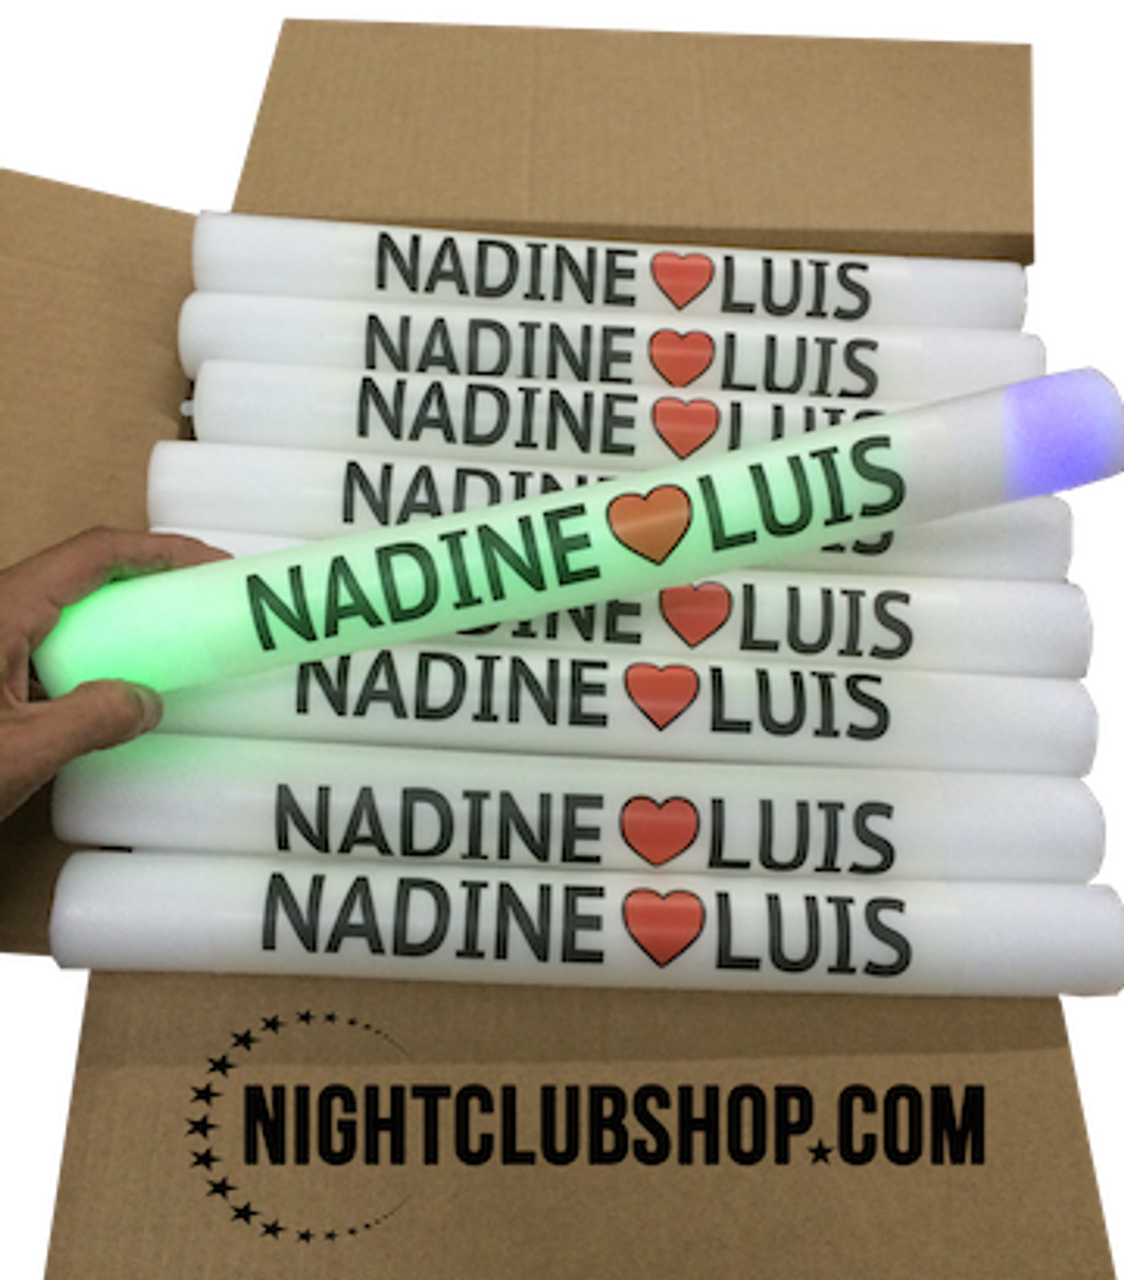 VLED , LED BATON, Custom LED Foam Stick, Customized, Personalized, EDM, Electro, House, Promo, Nightclub, Baton, Wand, Stix, Glow, Light up, Lit up, Electronic, Coachella, Grand Central, Foam Sticks, Foam Stix, Glow Sticks, CLUB SPACE, South Beach, Miami, DjAlex K., MiamiVideoKings